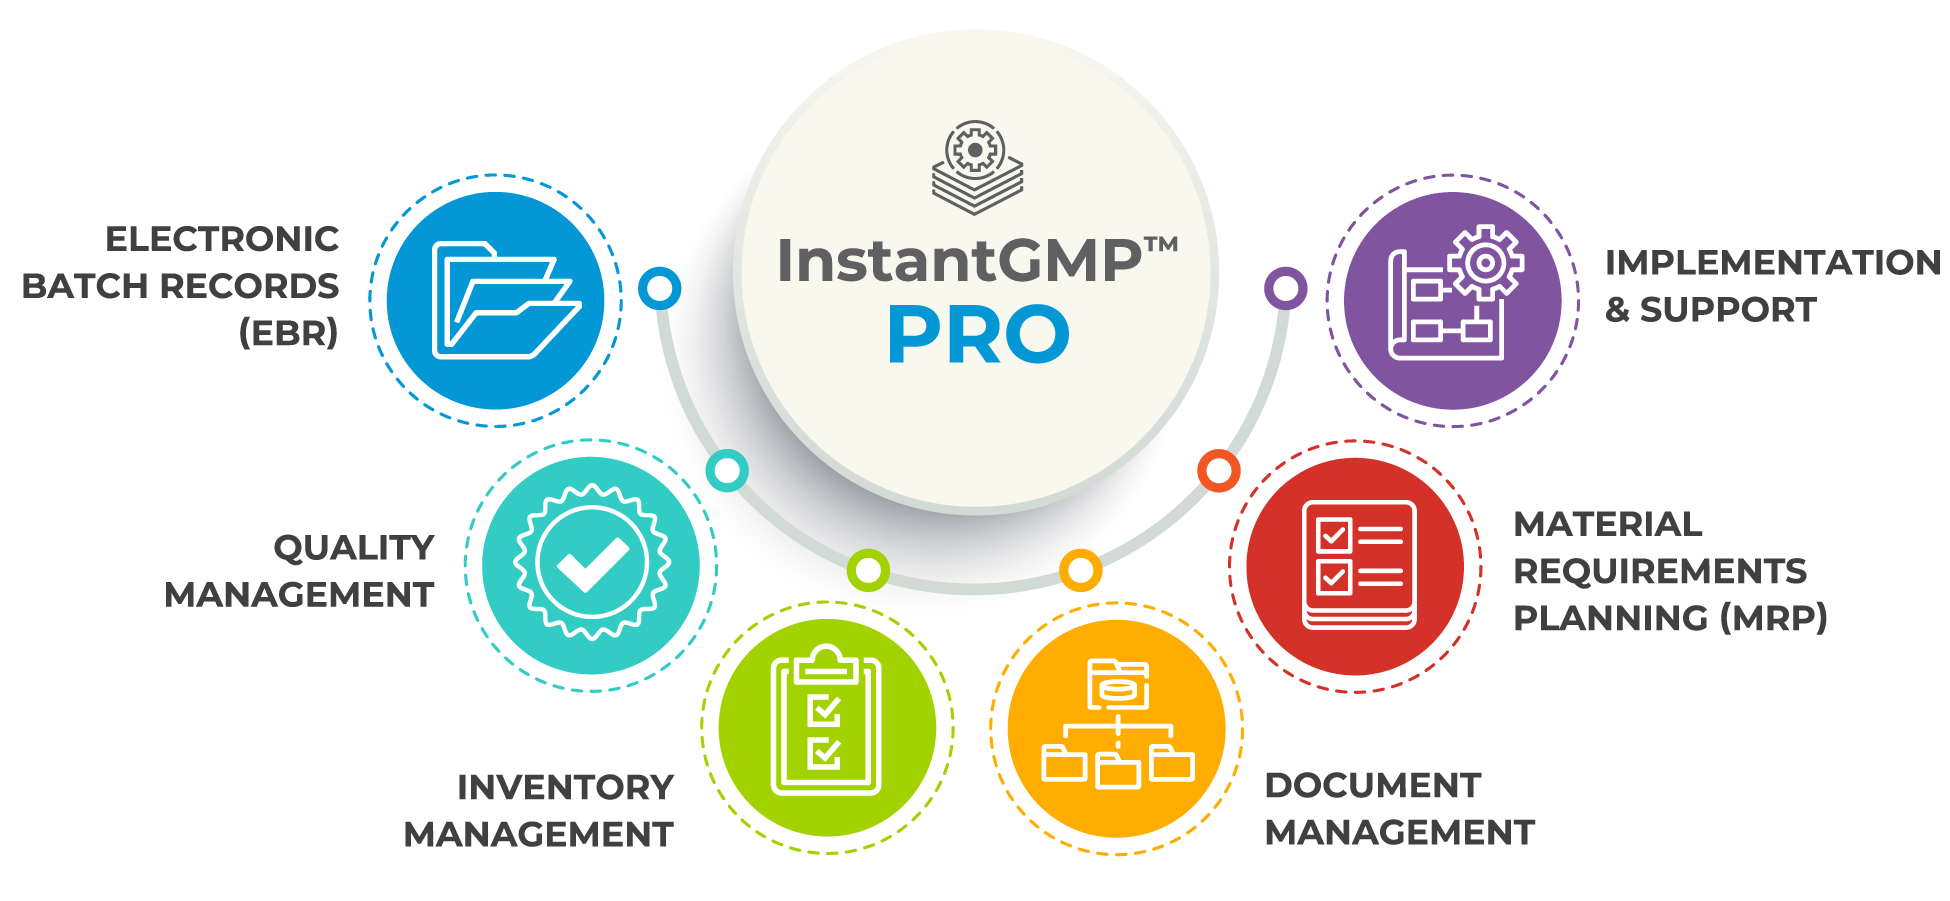 InstantGMP Pro batch management software infographic